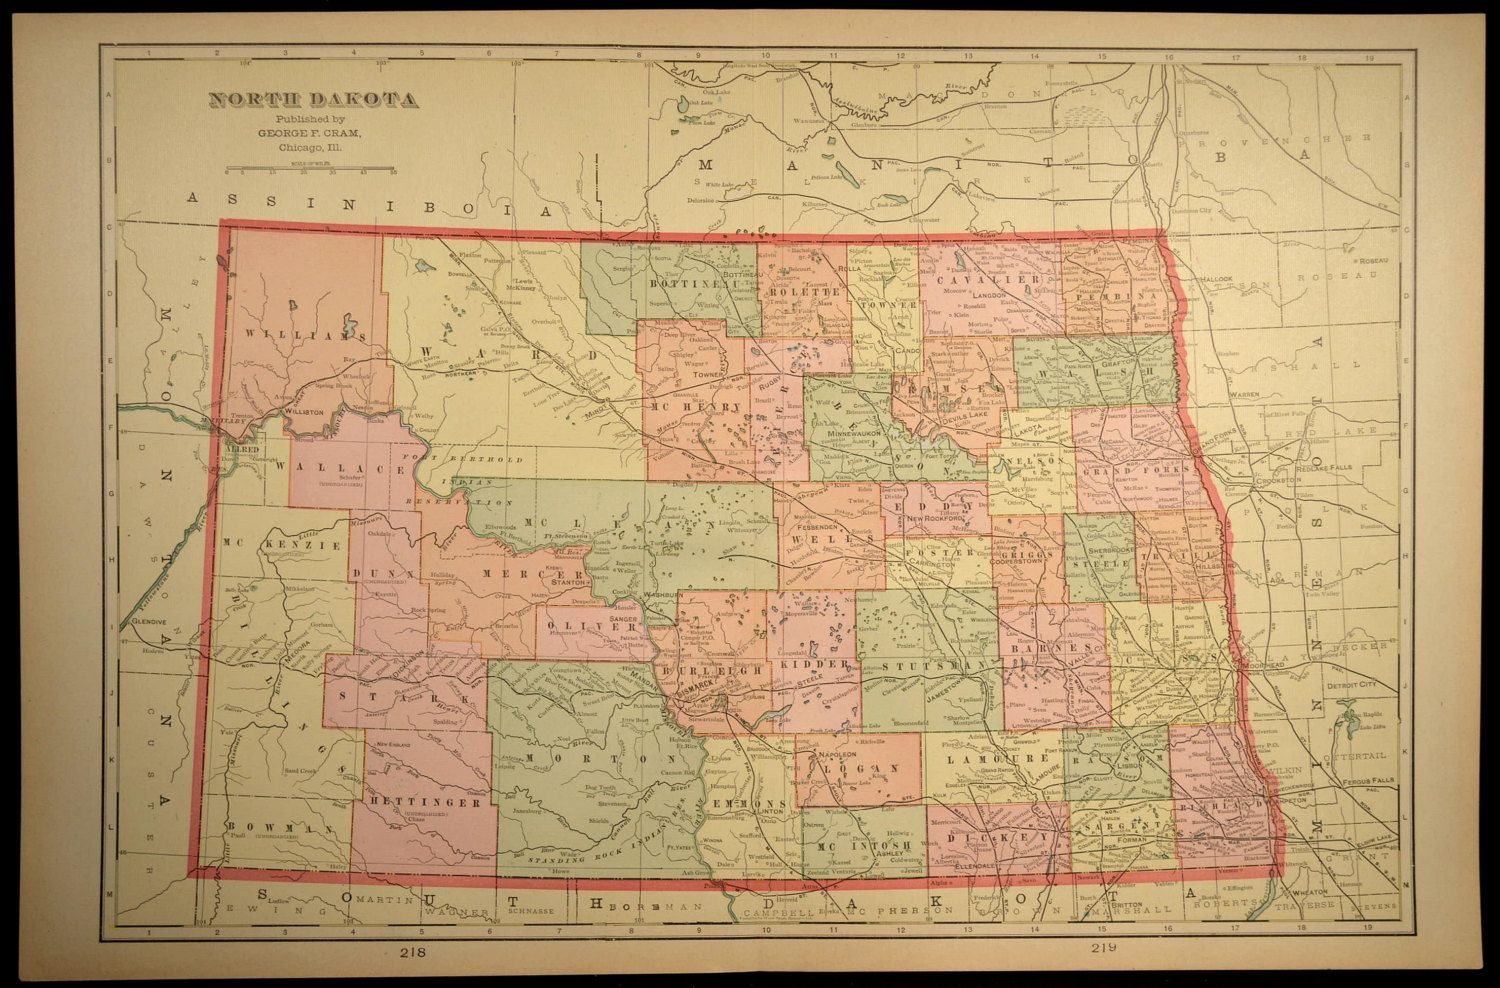 North Dakota Map North Dakota Antique LARGE Wall Decor | North ...